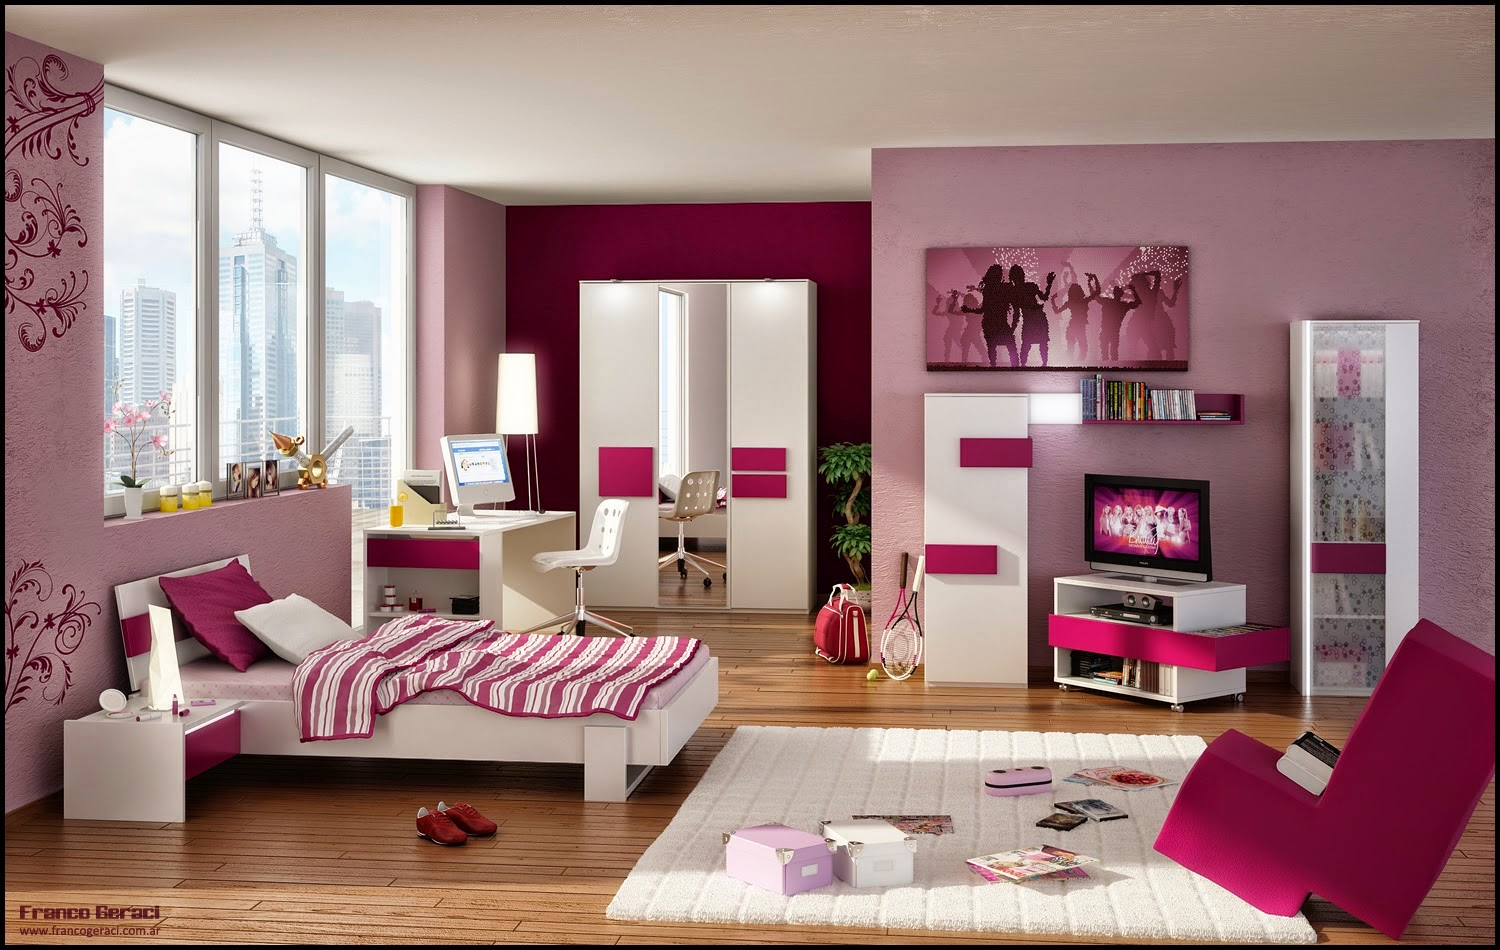 conseil peinture chambre fille id es d co pour maison. Black Bedroom Furniture Sets. Home Design Ideas